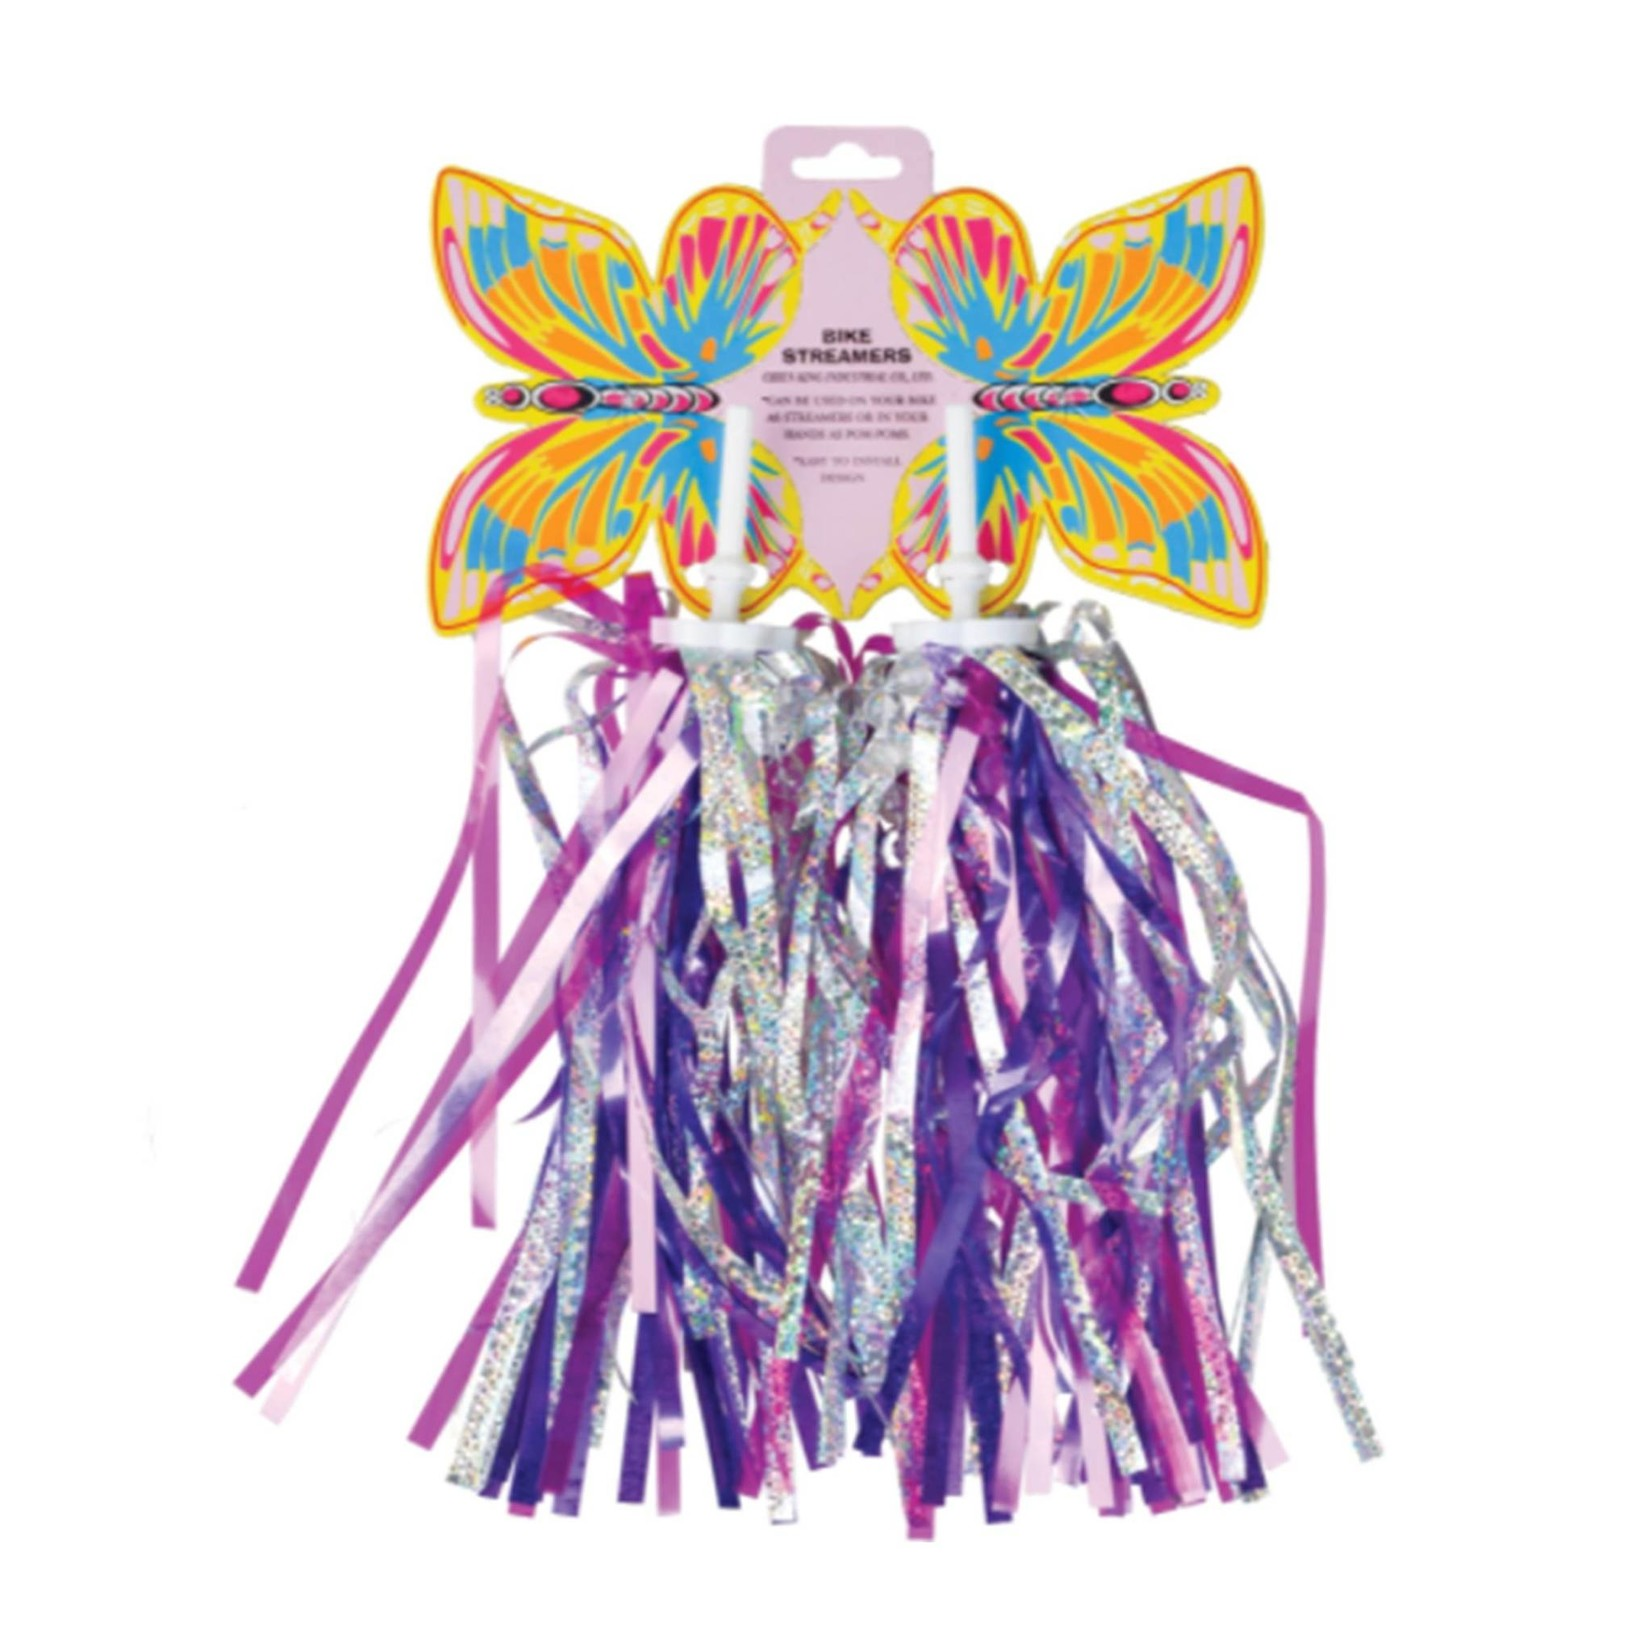 Bikes Up Streamers Sequin Laser Silver Pink Purple